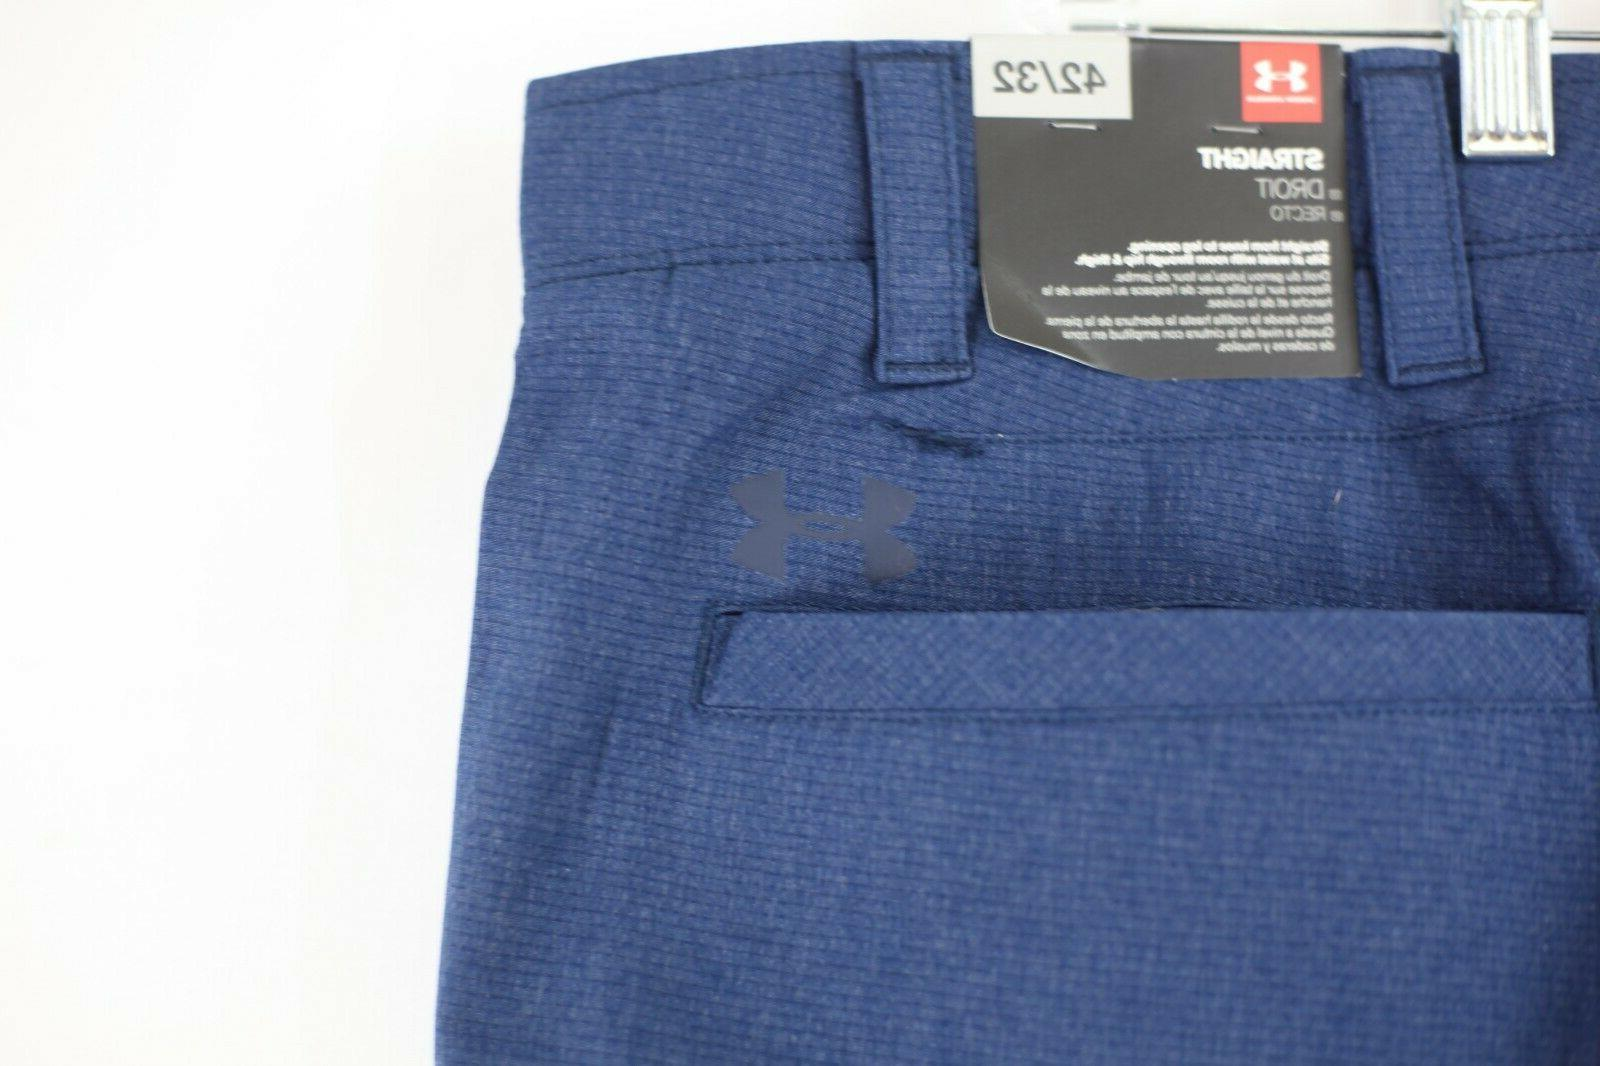 NEW Loose Match Vented Size 42x32